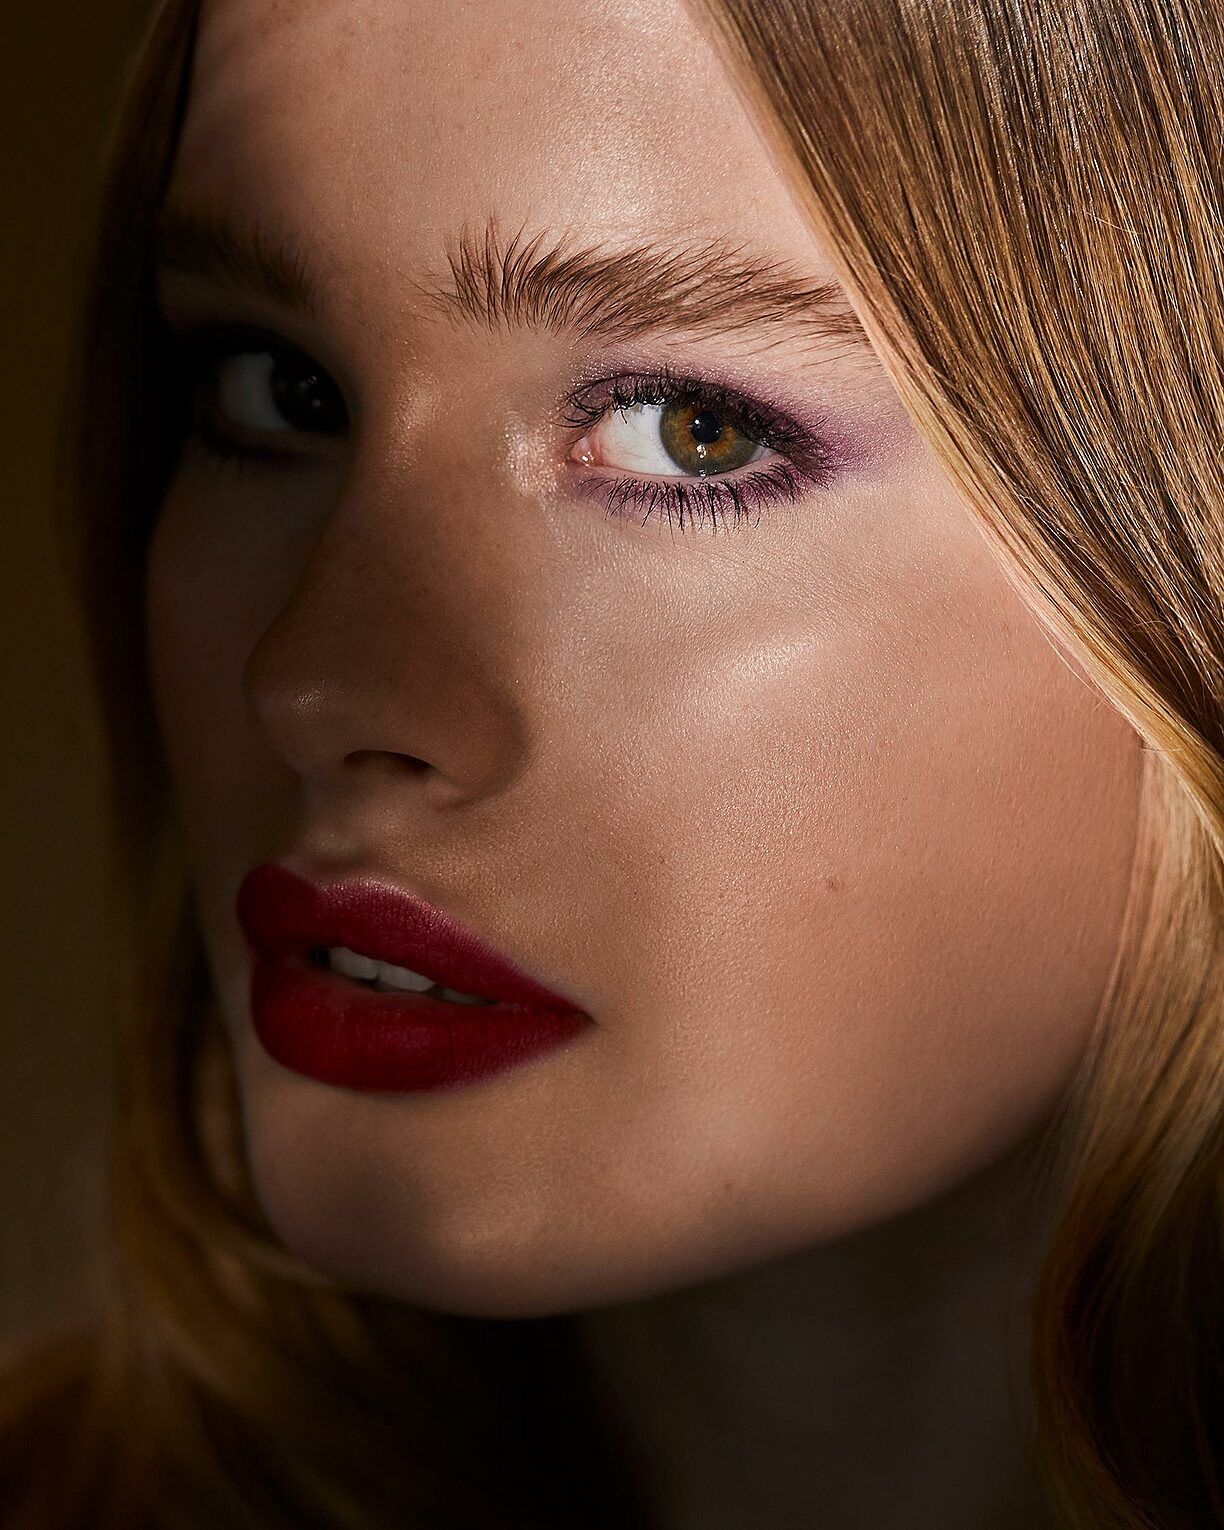 A beauty close-up with a blonde model. She wears red lips and a light purple eye shadow. A shadow is around her nose